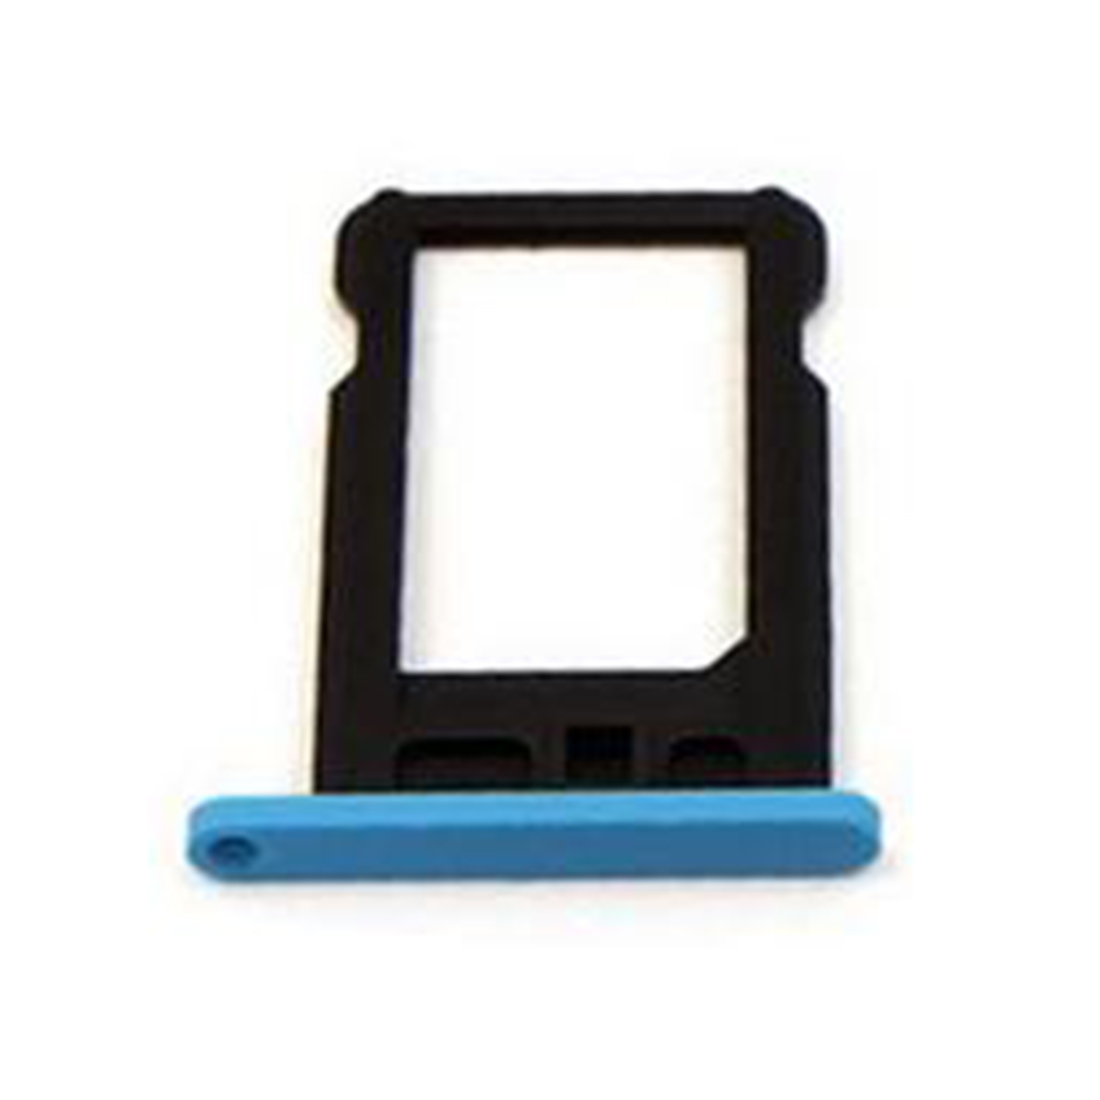 Iphone S Sim Card Tray Replacement